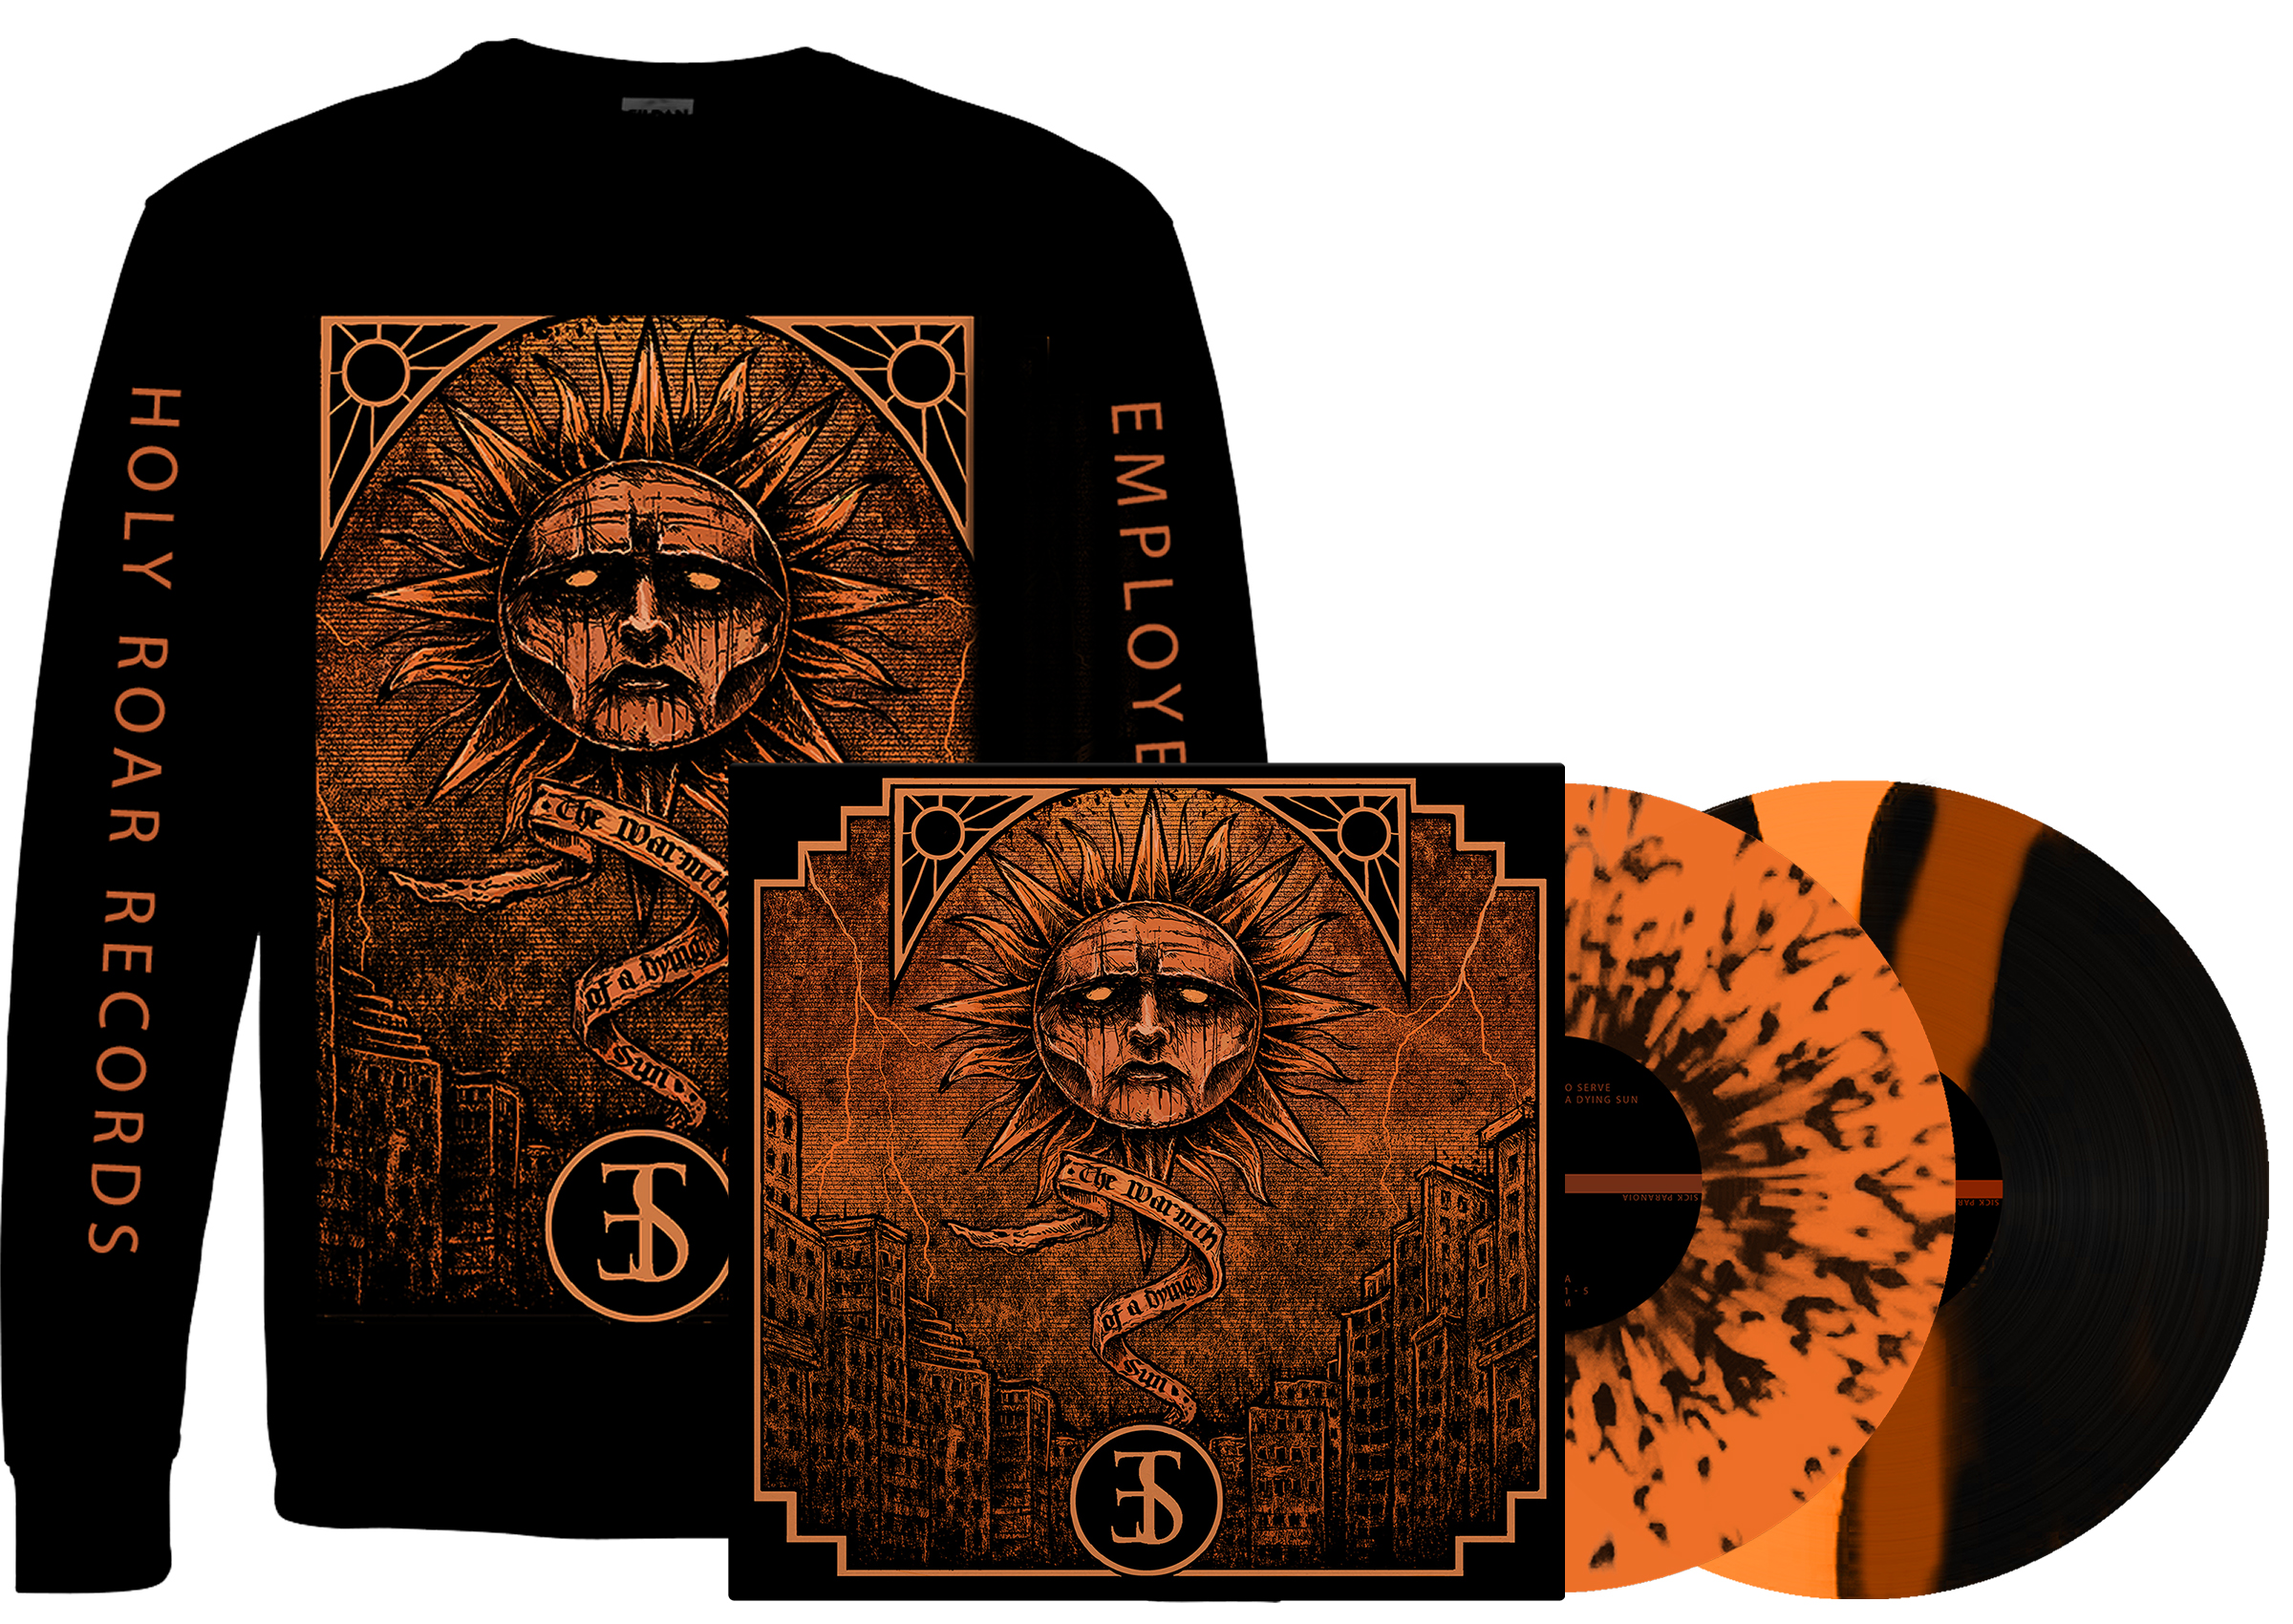 Employed To Serve - The Warmth Of A Dying Sun longsleeve + LP PREORDER